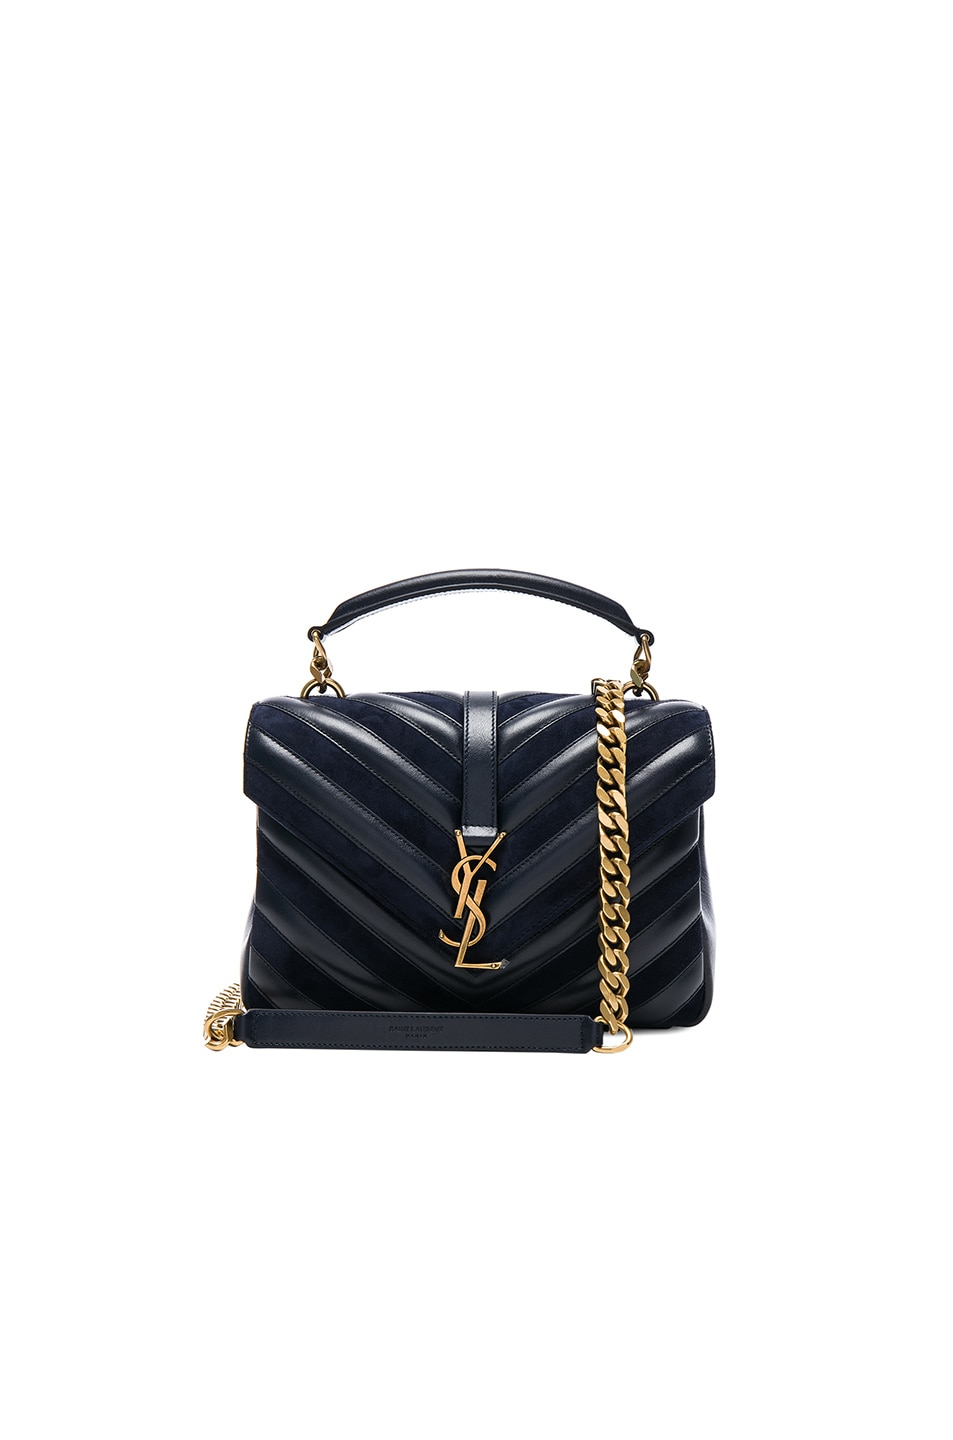 Image 1 of Saint Laurent Medium Leather & Suede Patchwork Monogramme College Bag in Deep Marine